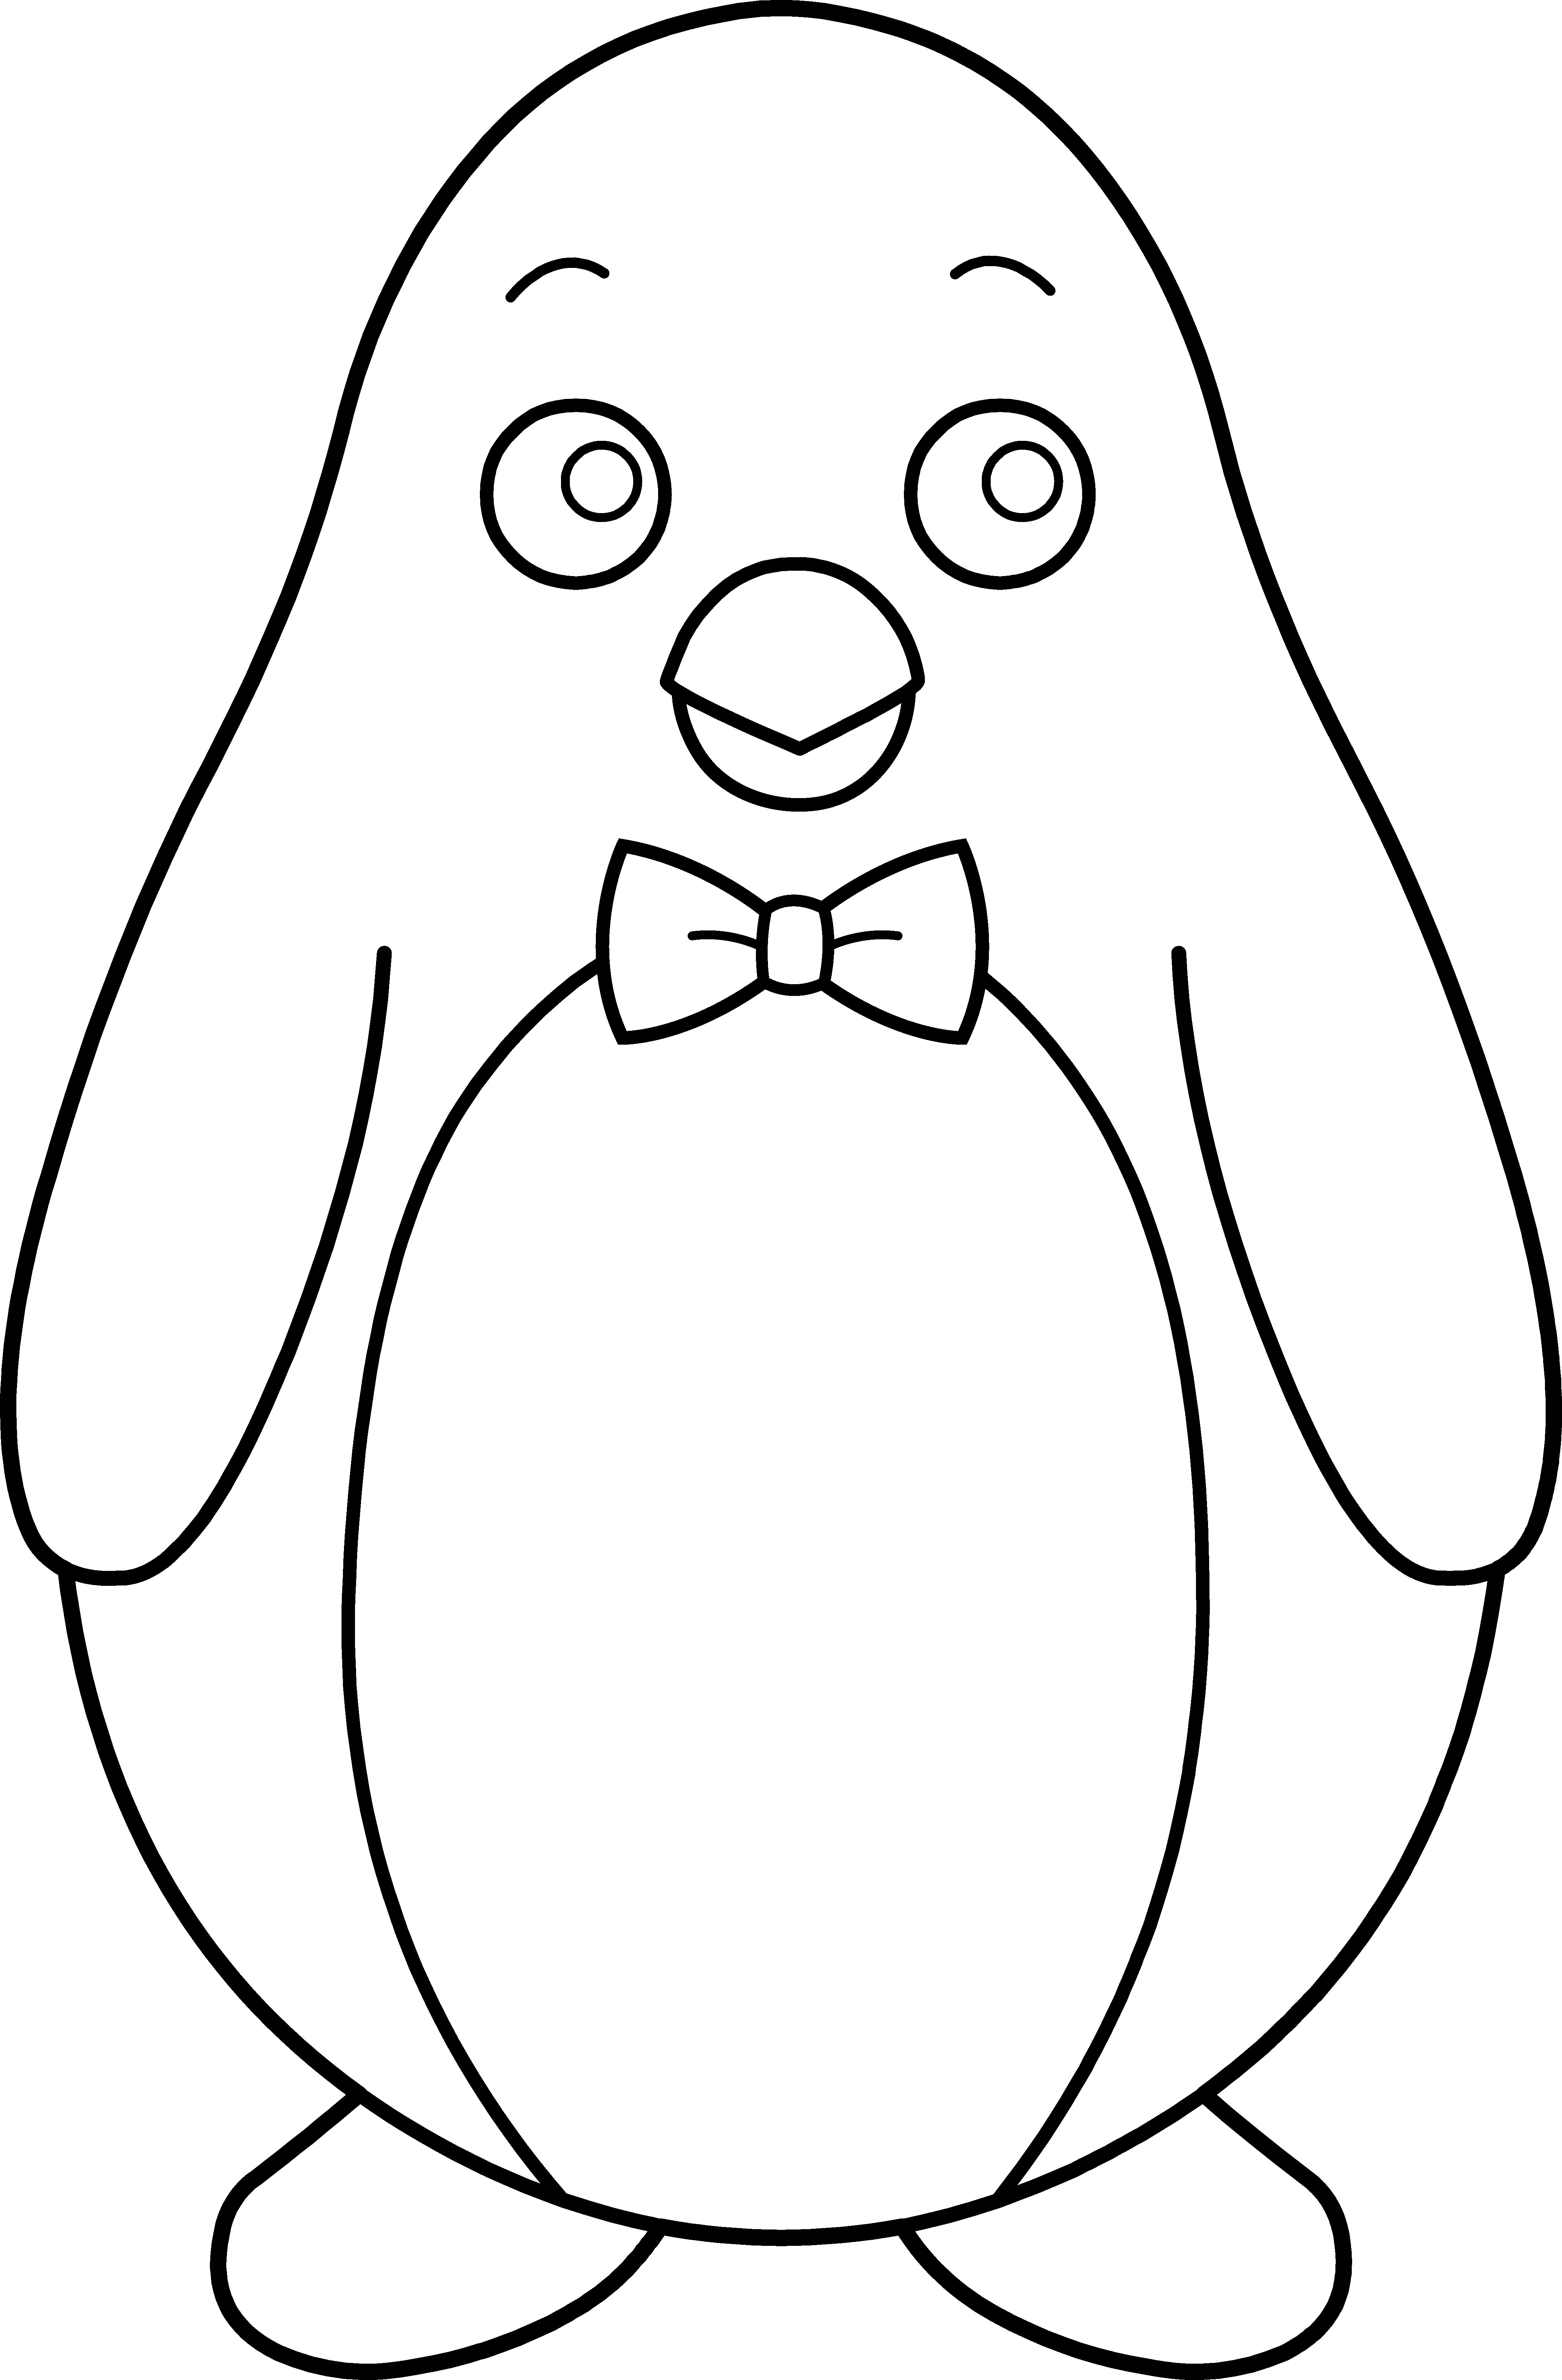 Black and white penguin clipart 4 » Clipart Station.